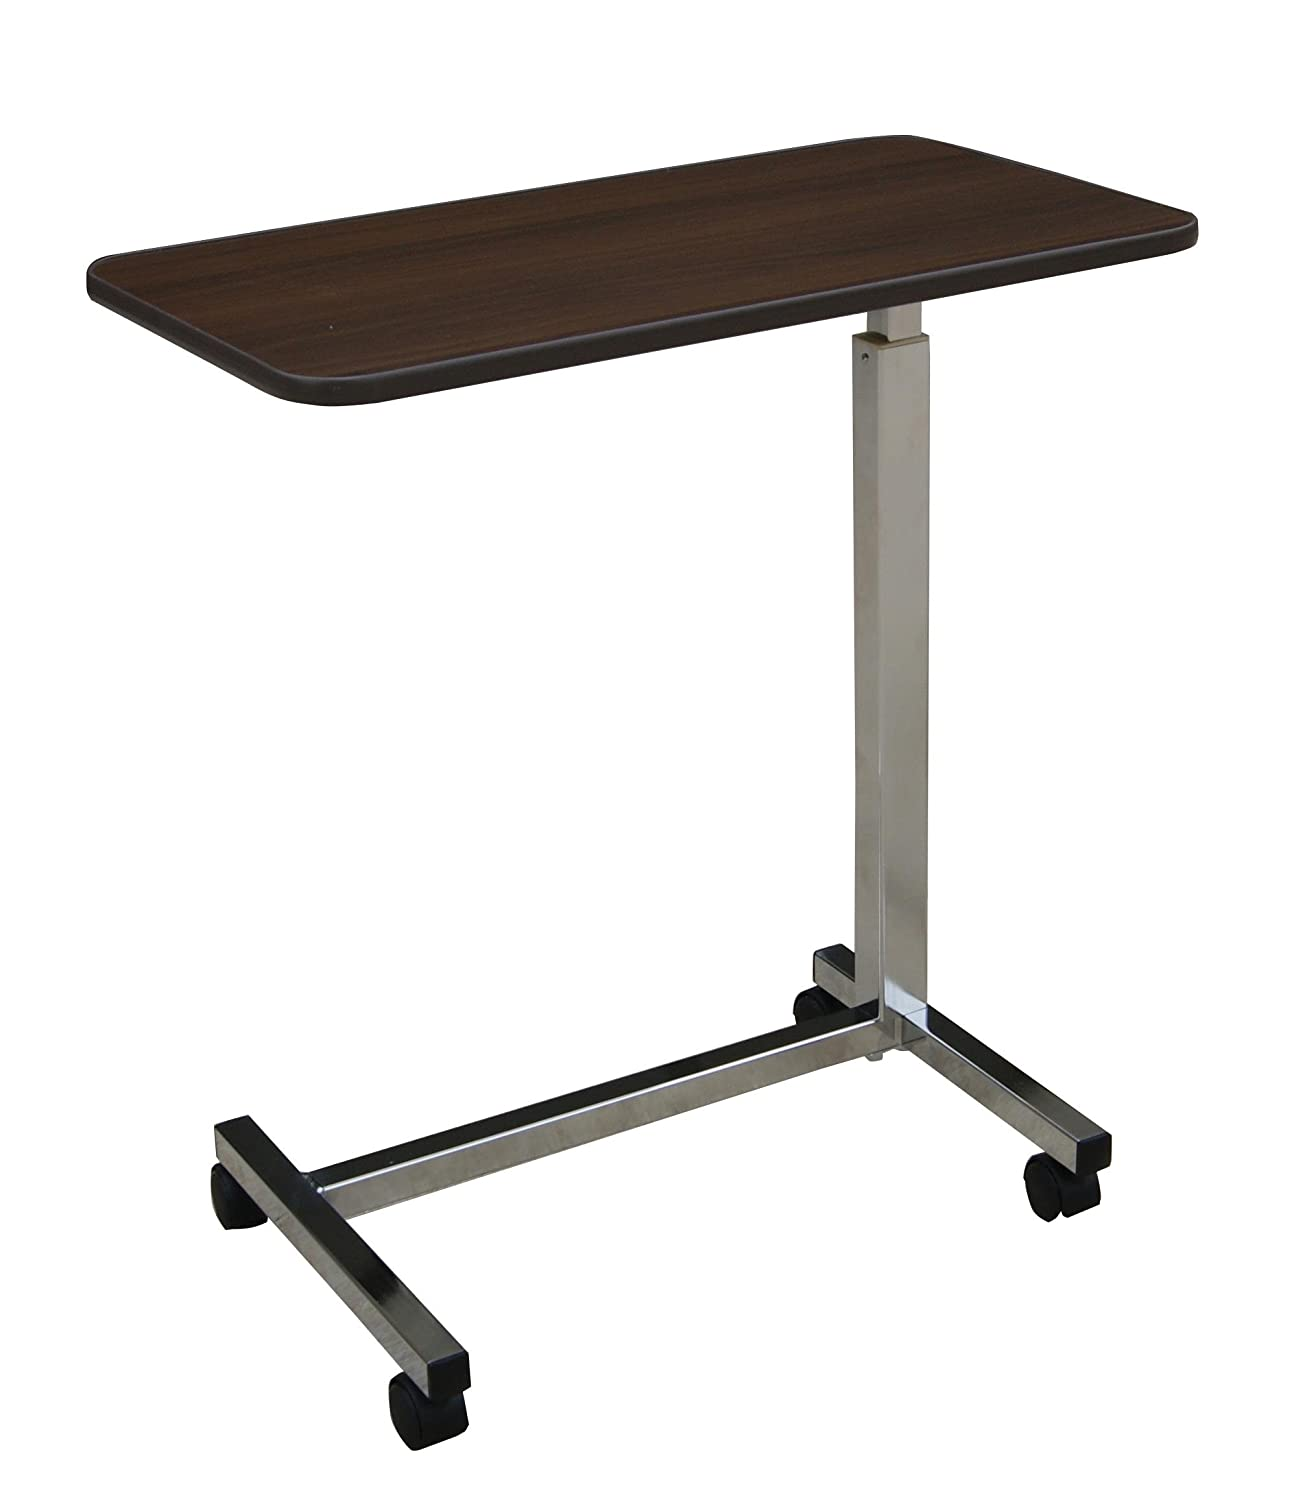 Medline Overbed Bedside Table with Wheels for Home, Nursing Home, Assisted Living, or Hospital use: Industrial & Scientific